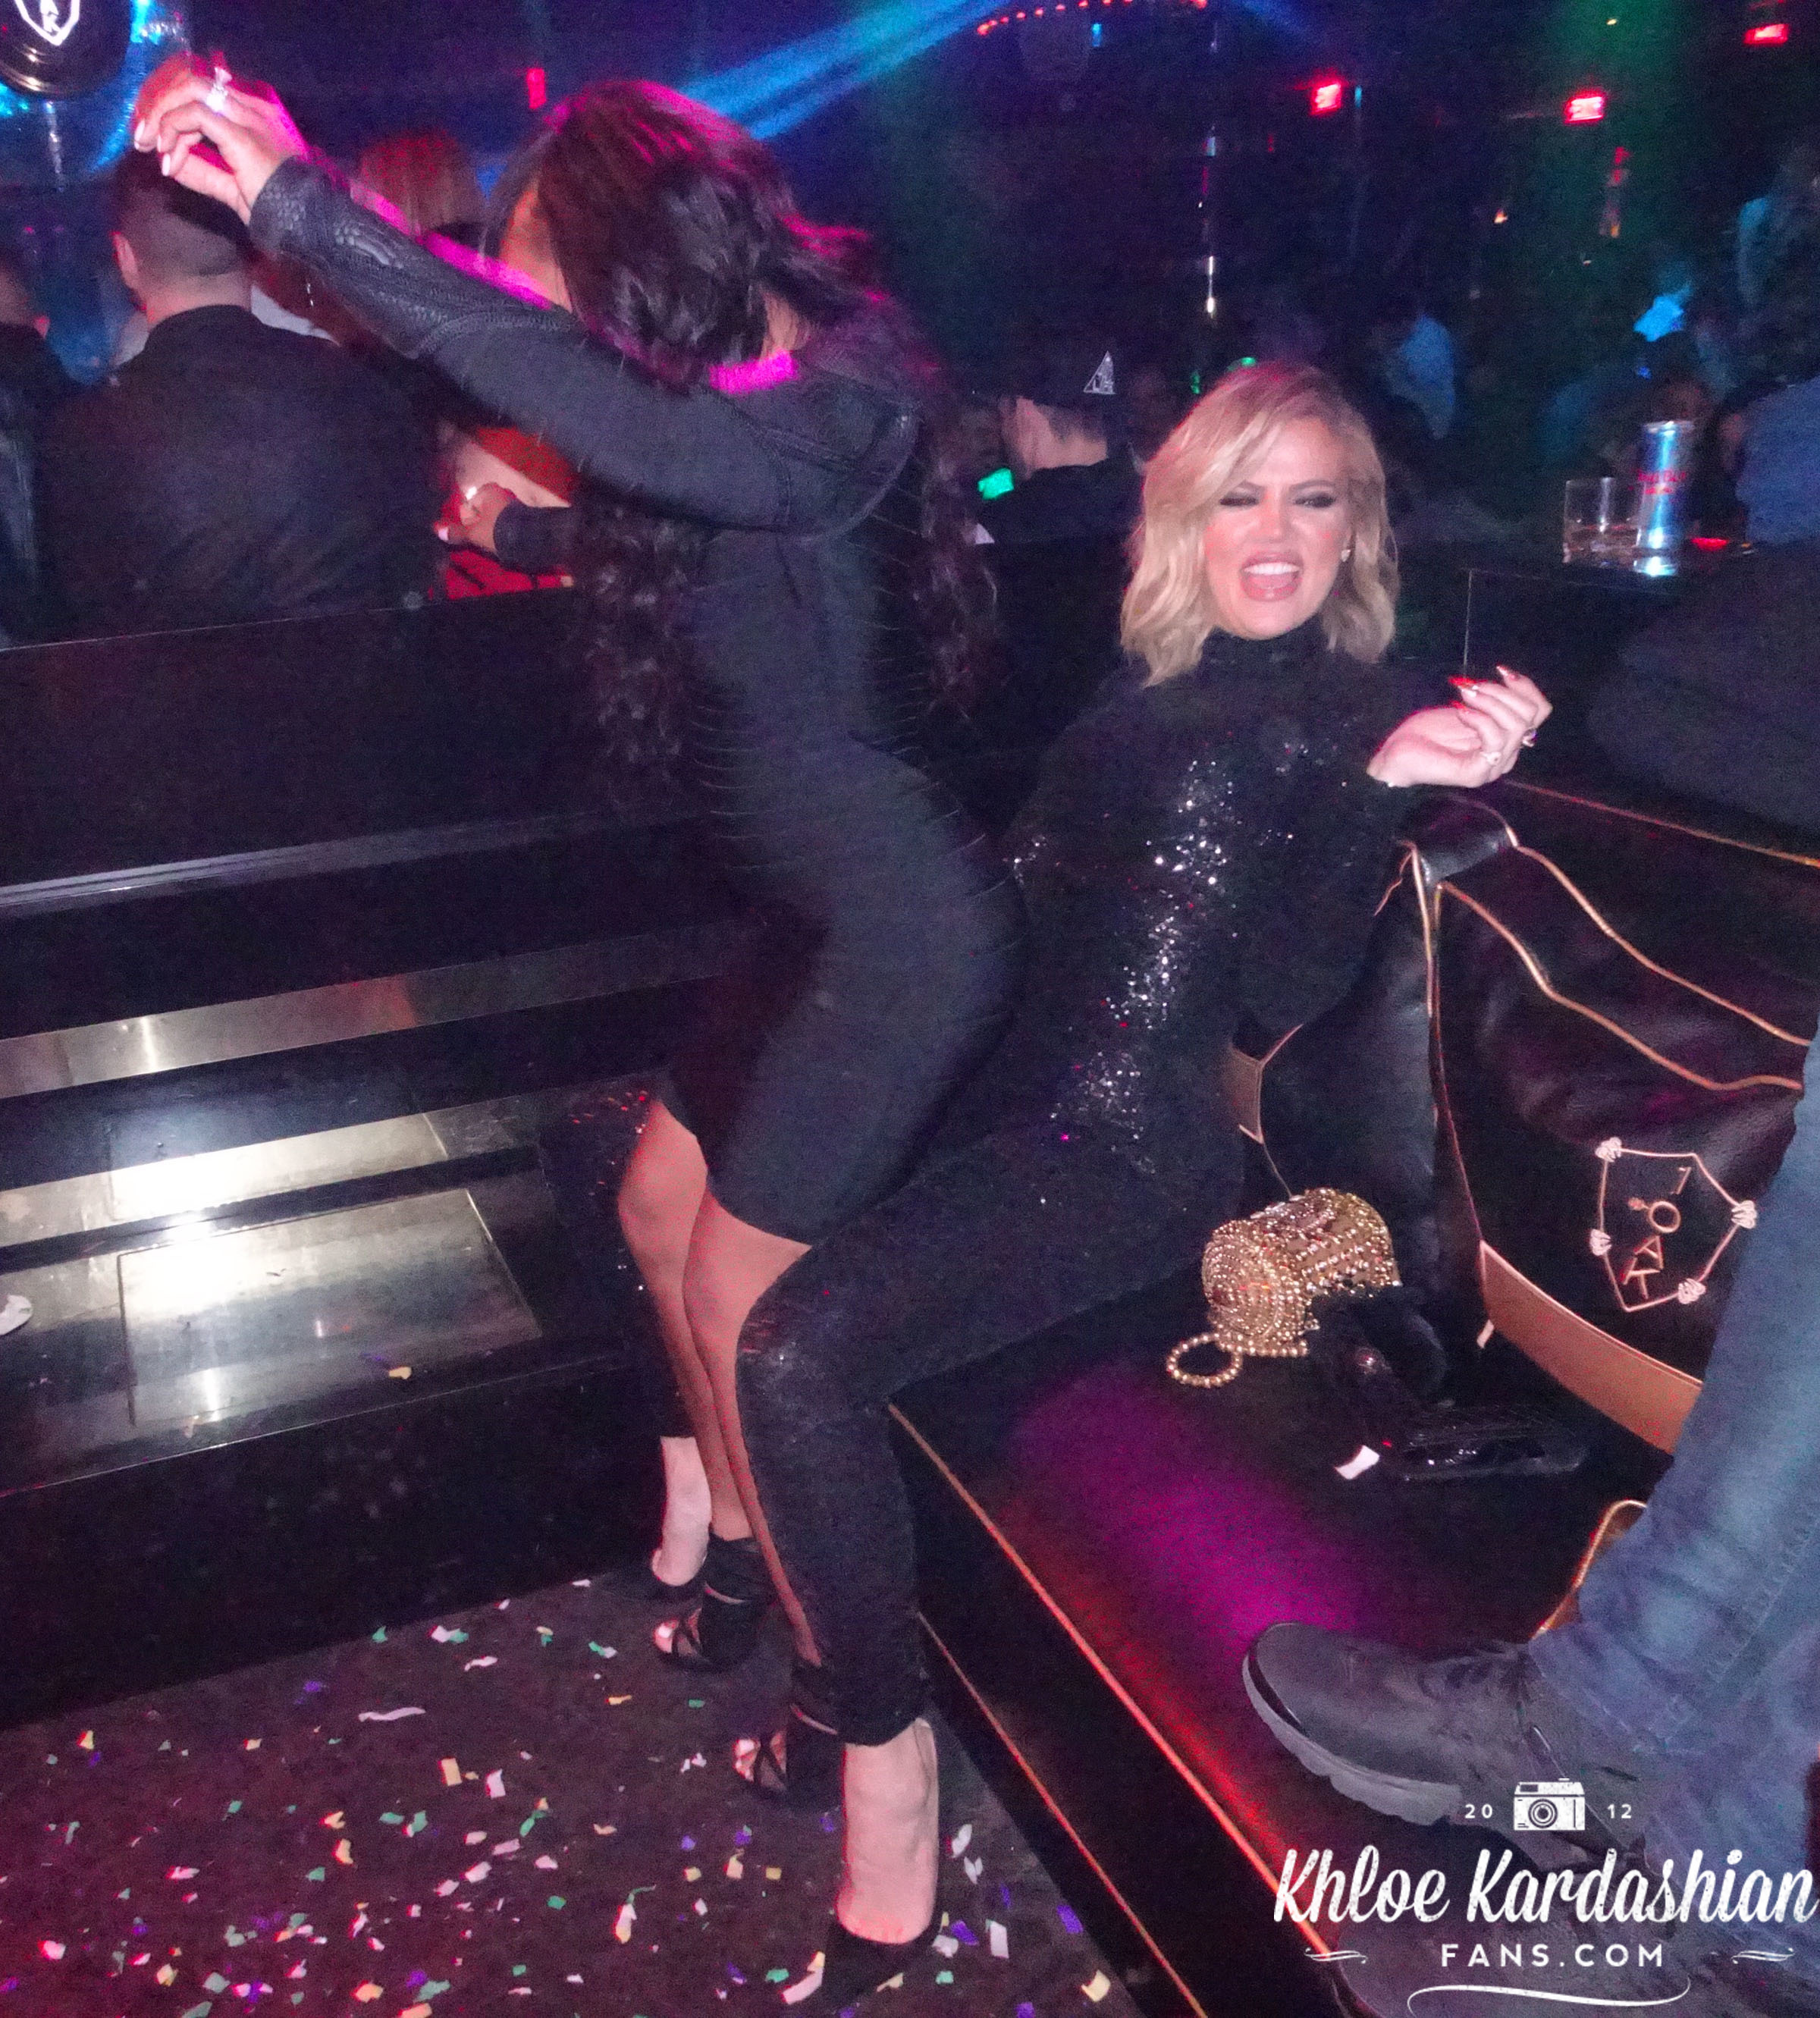 (PHOTOS) March 11, 2016: Khloe at 1 Oak nightclub in Las Vegas